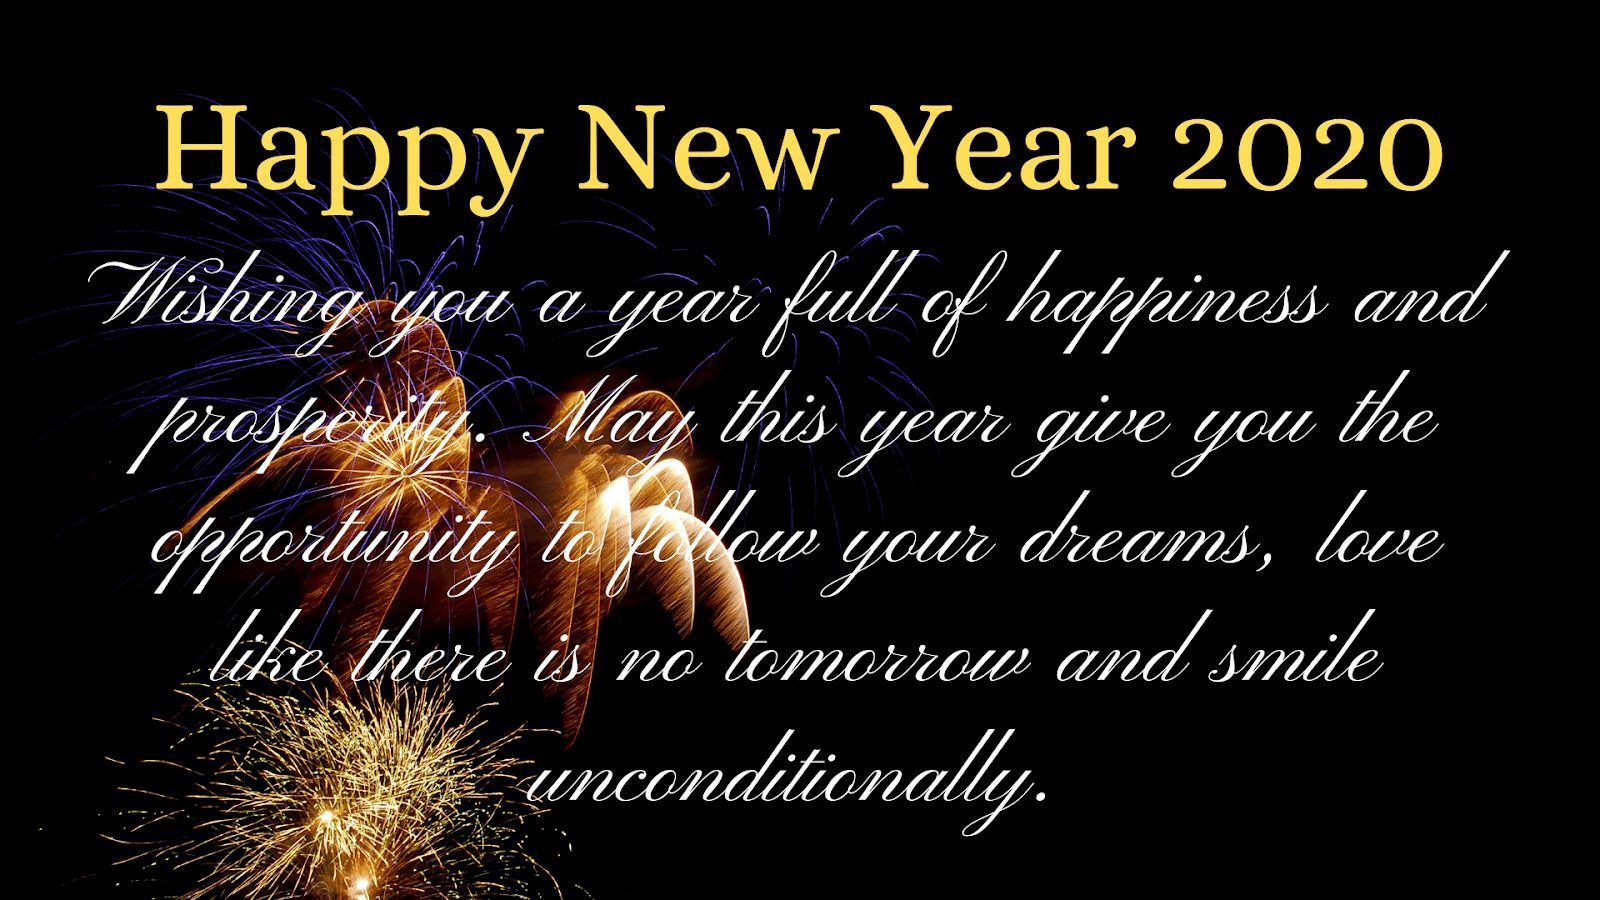 20 Unique Happy New Year 2020 Wishes